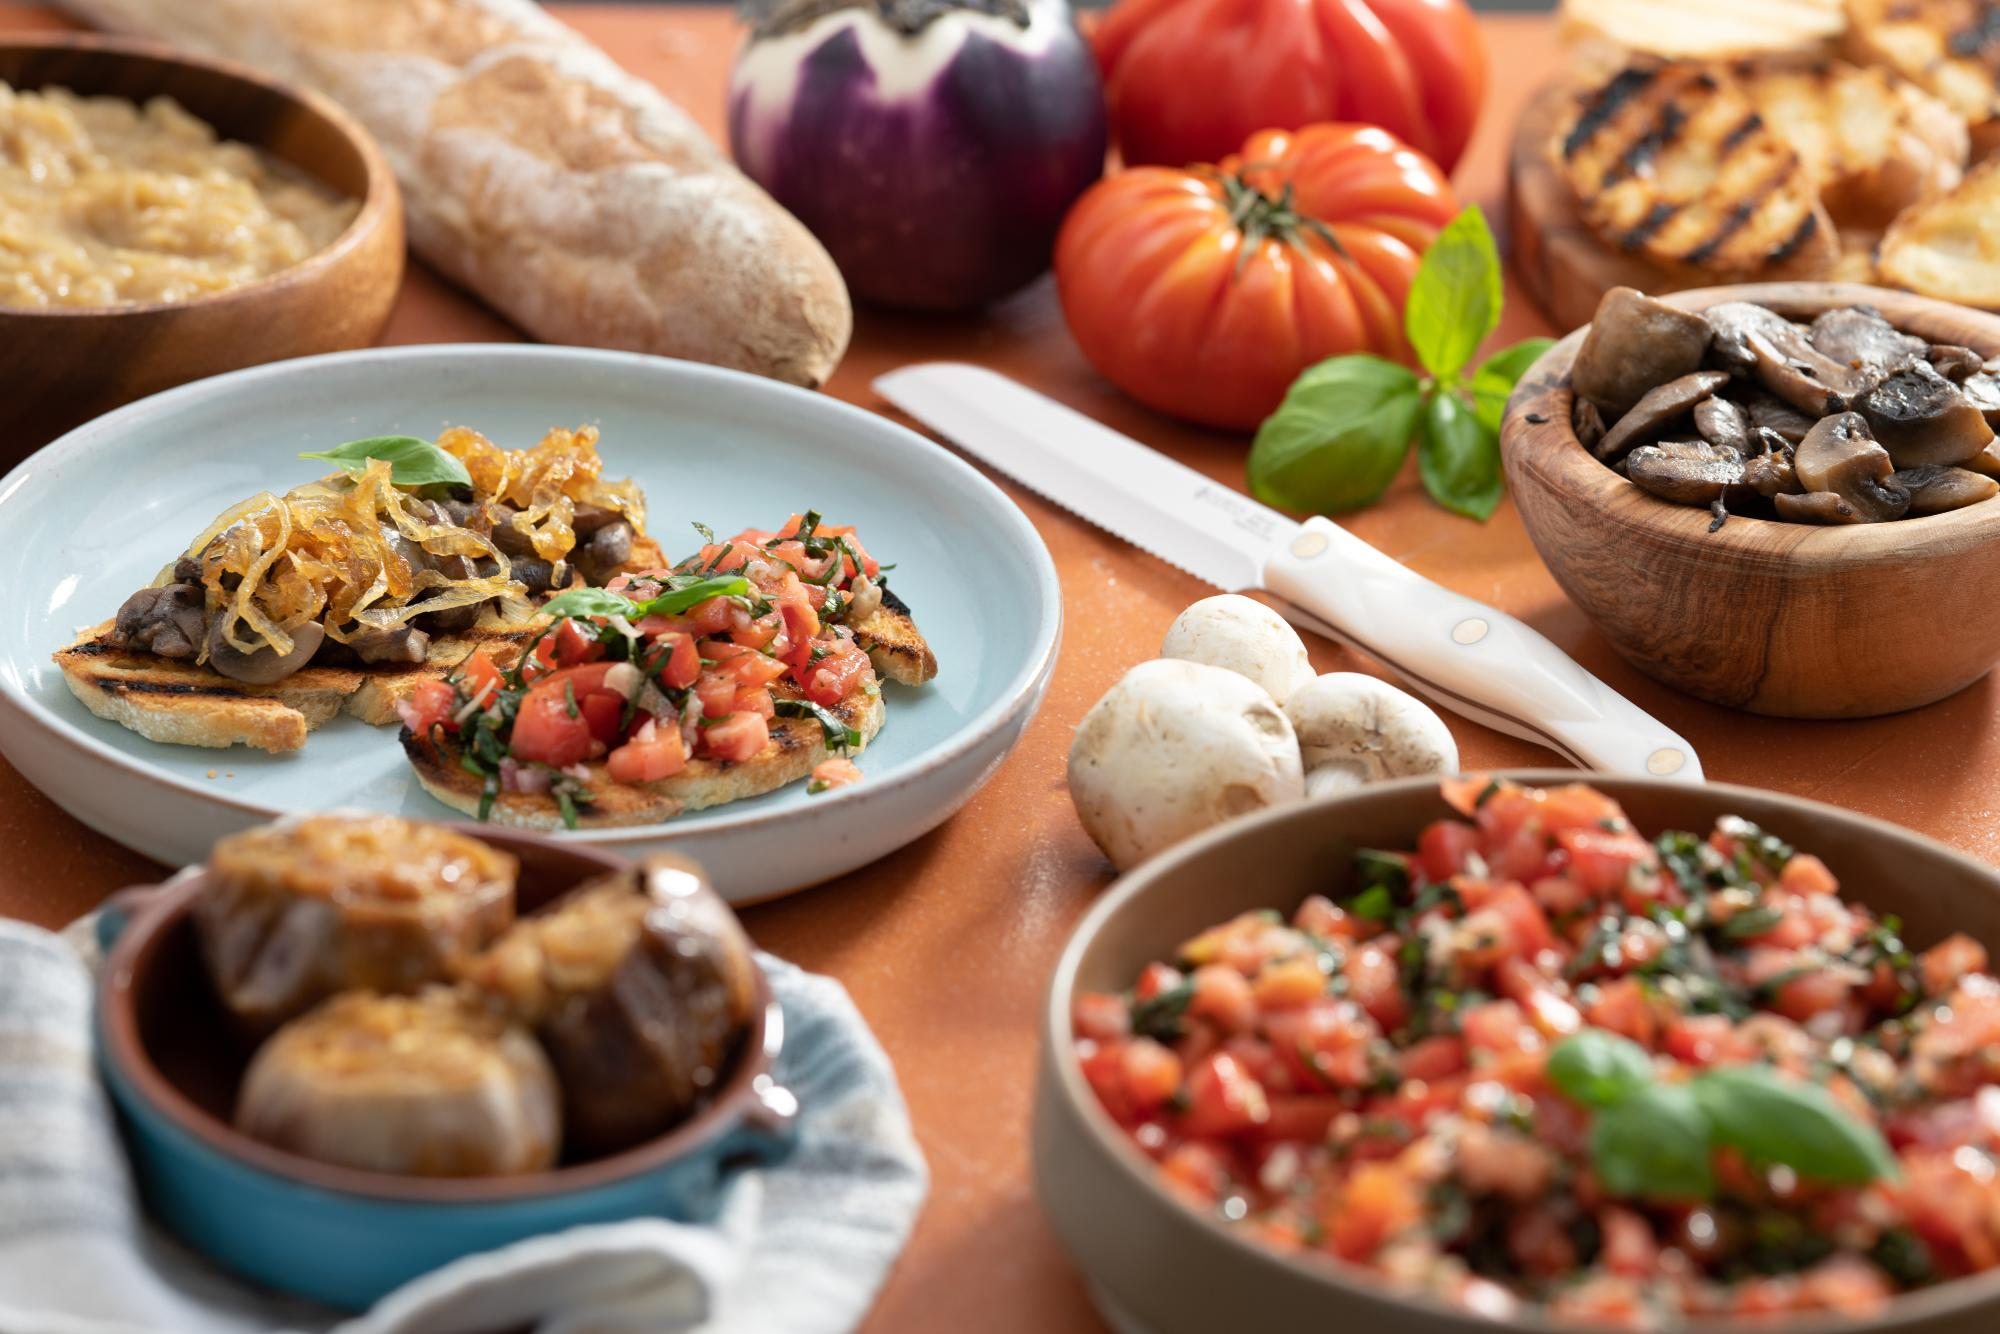 Bruschetta with 4 Topping Options